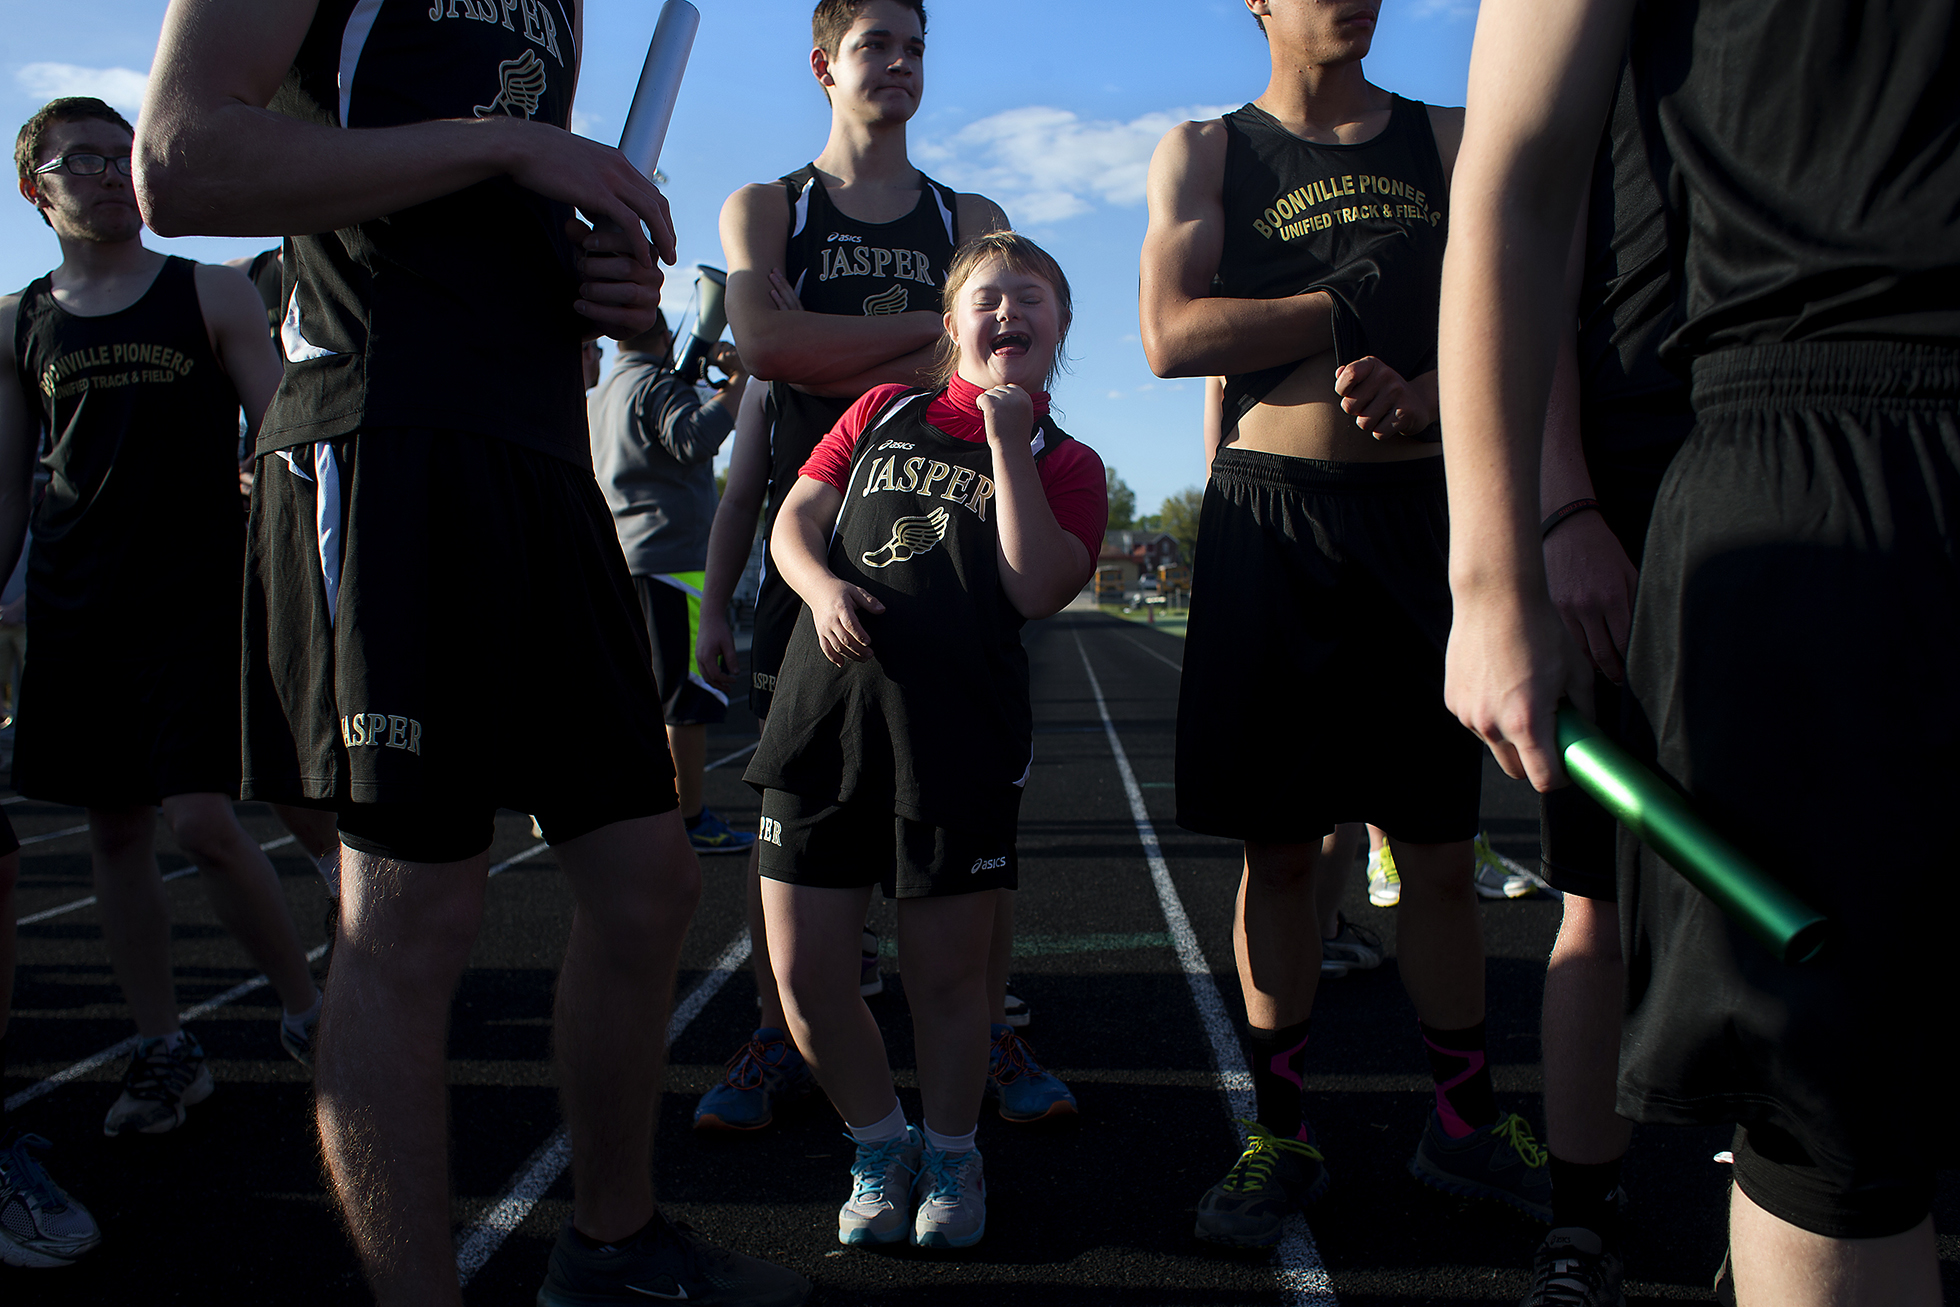 Jasper High School junior Amy Stork pumped a fist as she lined up for the 400-meter relay during the unified track meet between Jasper and Boonville at Jerry Brewer Alumni Stadium in Jasper. The meet was the first for the JHS unified track program, which allows special-needs students to participate in a sport and experience the social sector of athletics they may have otherwise missed as part of their typical school day.